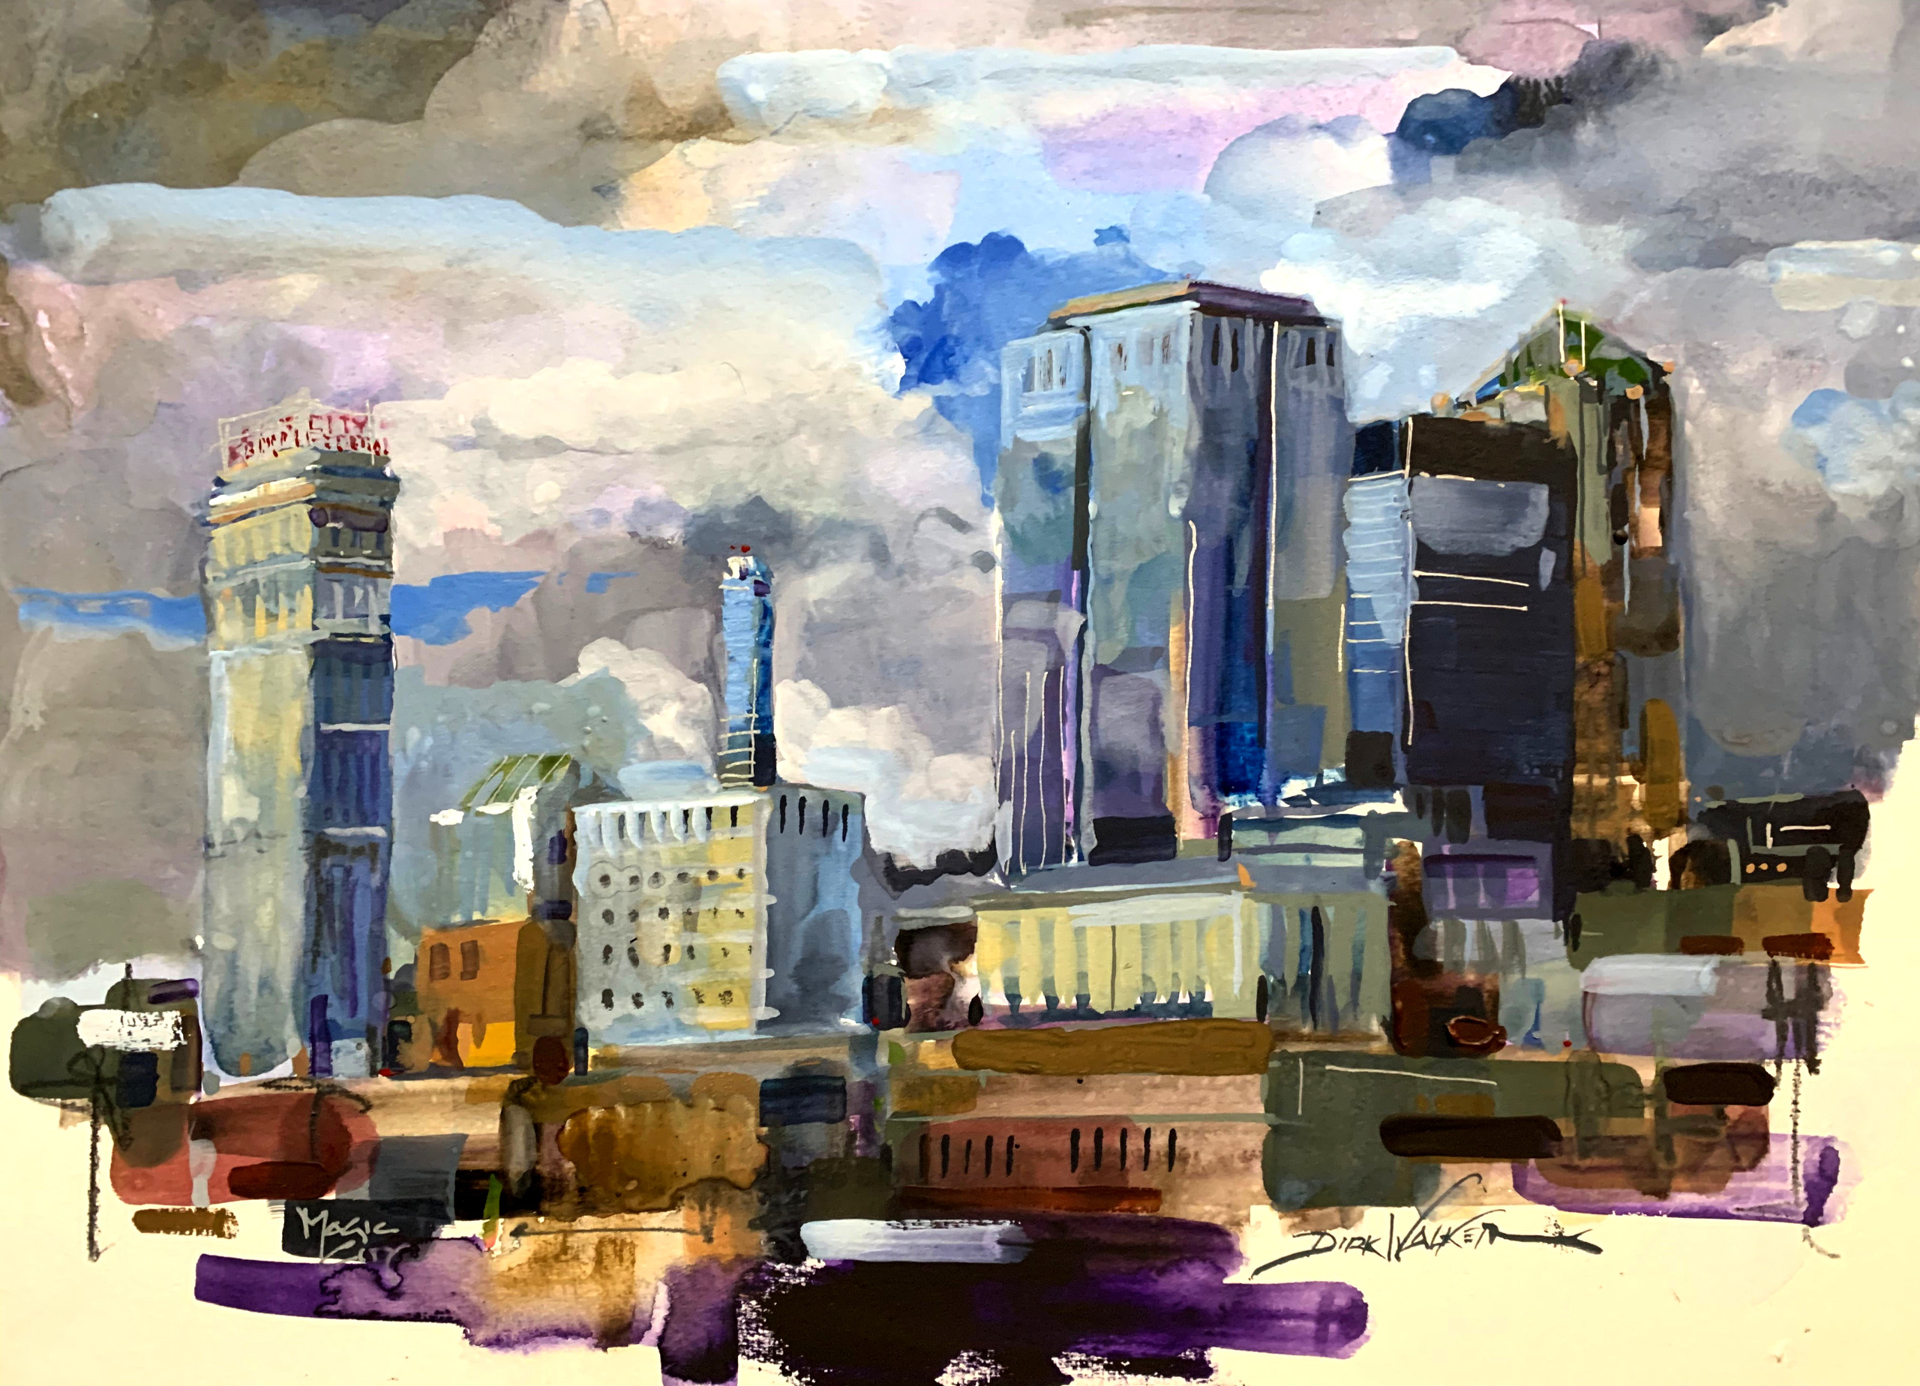 Storm Brewing Over the Magic City by Dirk Walker